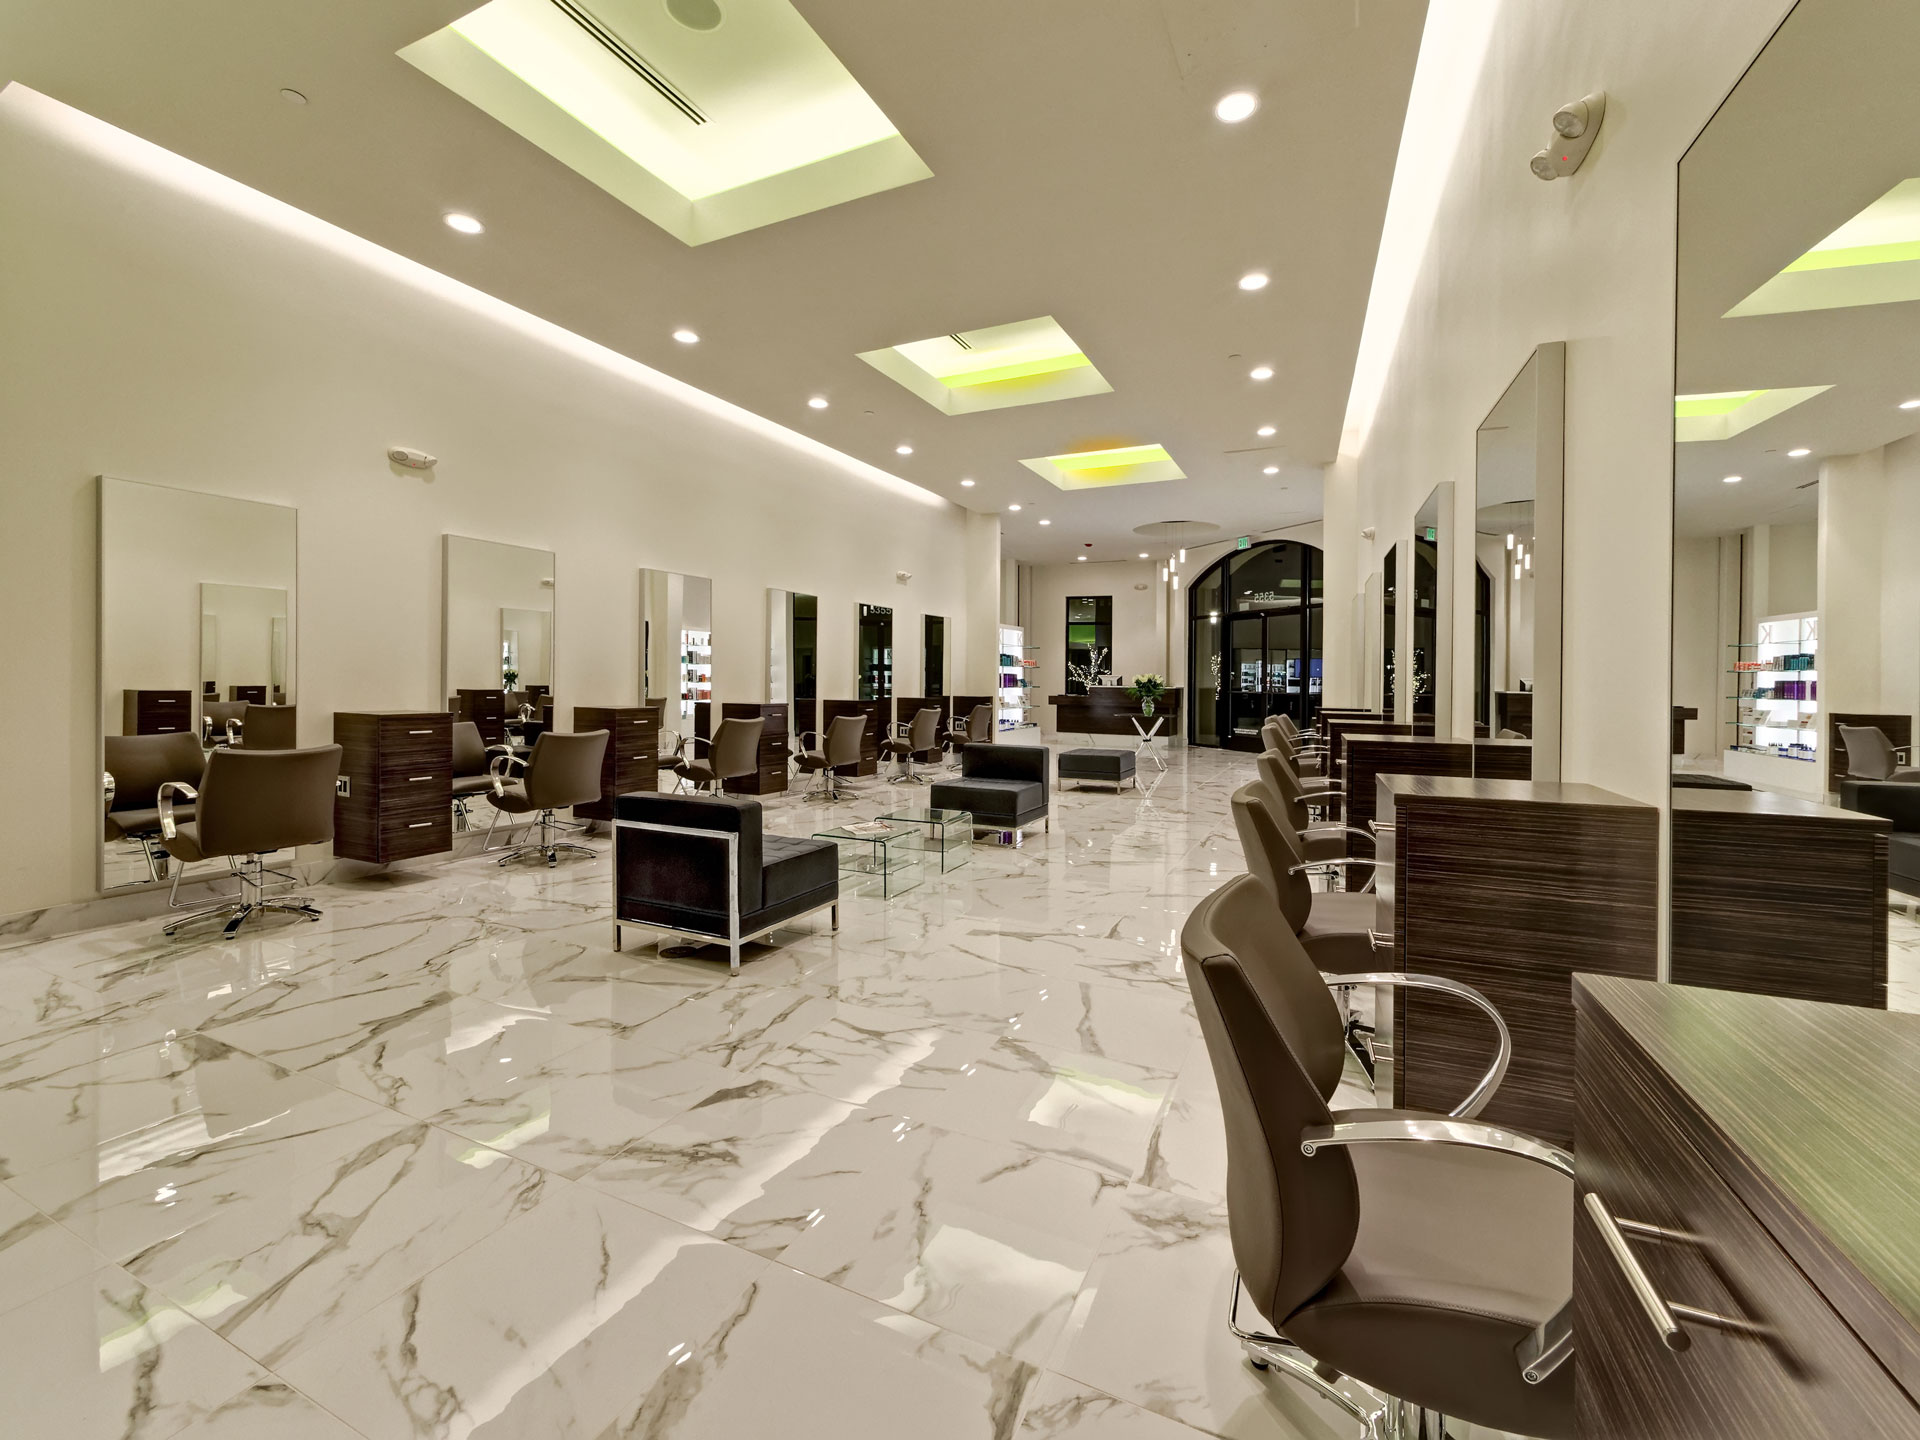 Salon Master Contact Aalam The Salon Plano Frisco Dallas Tx Best Hair Salon